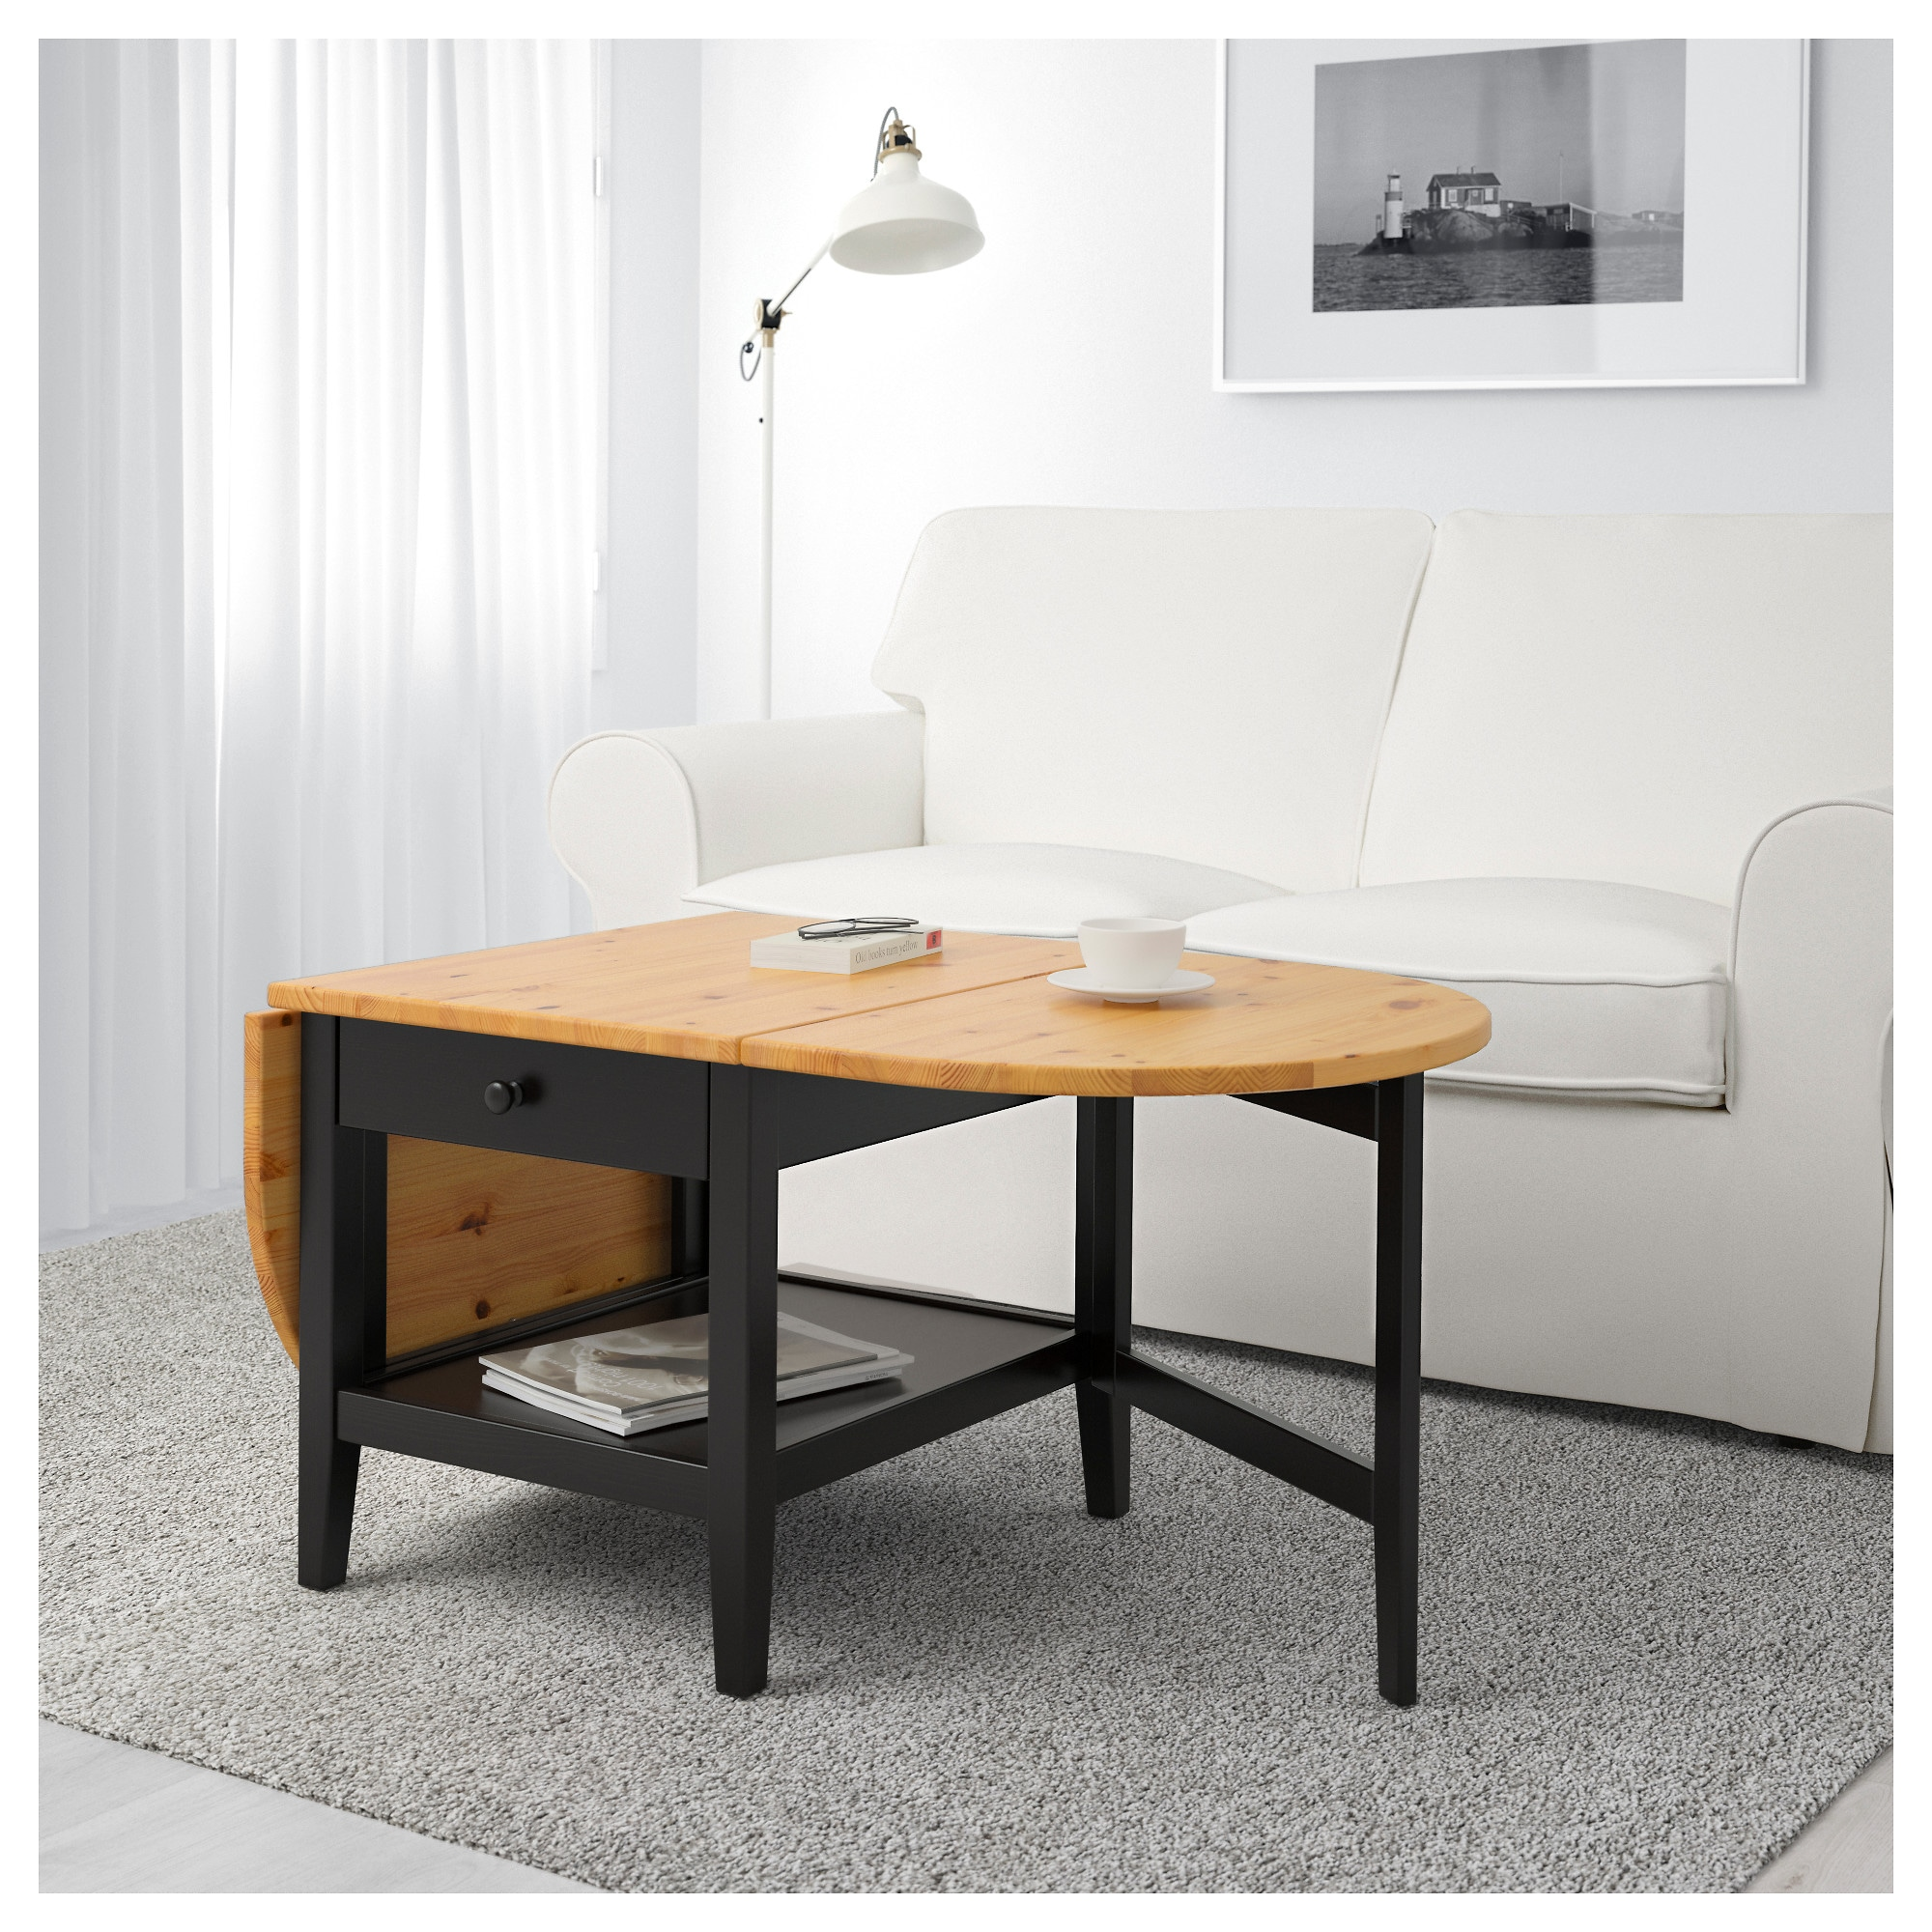 ARKELSTORP Coffee table IKEA